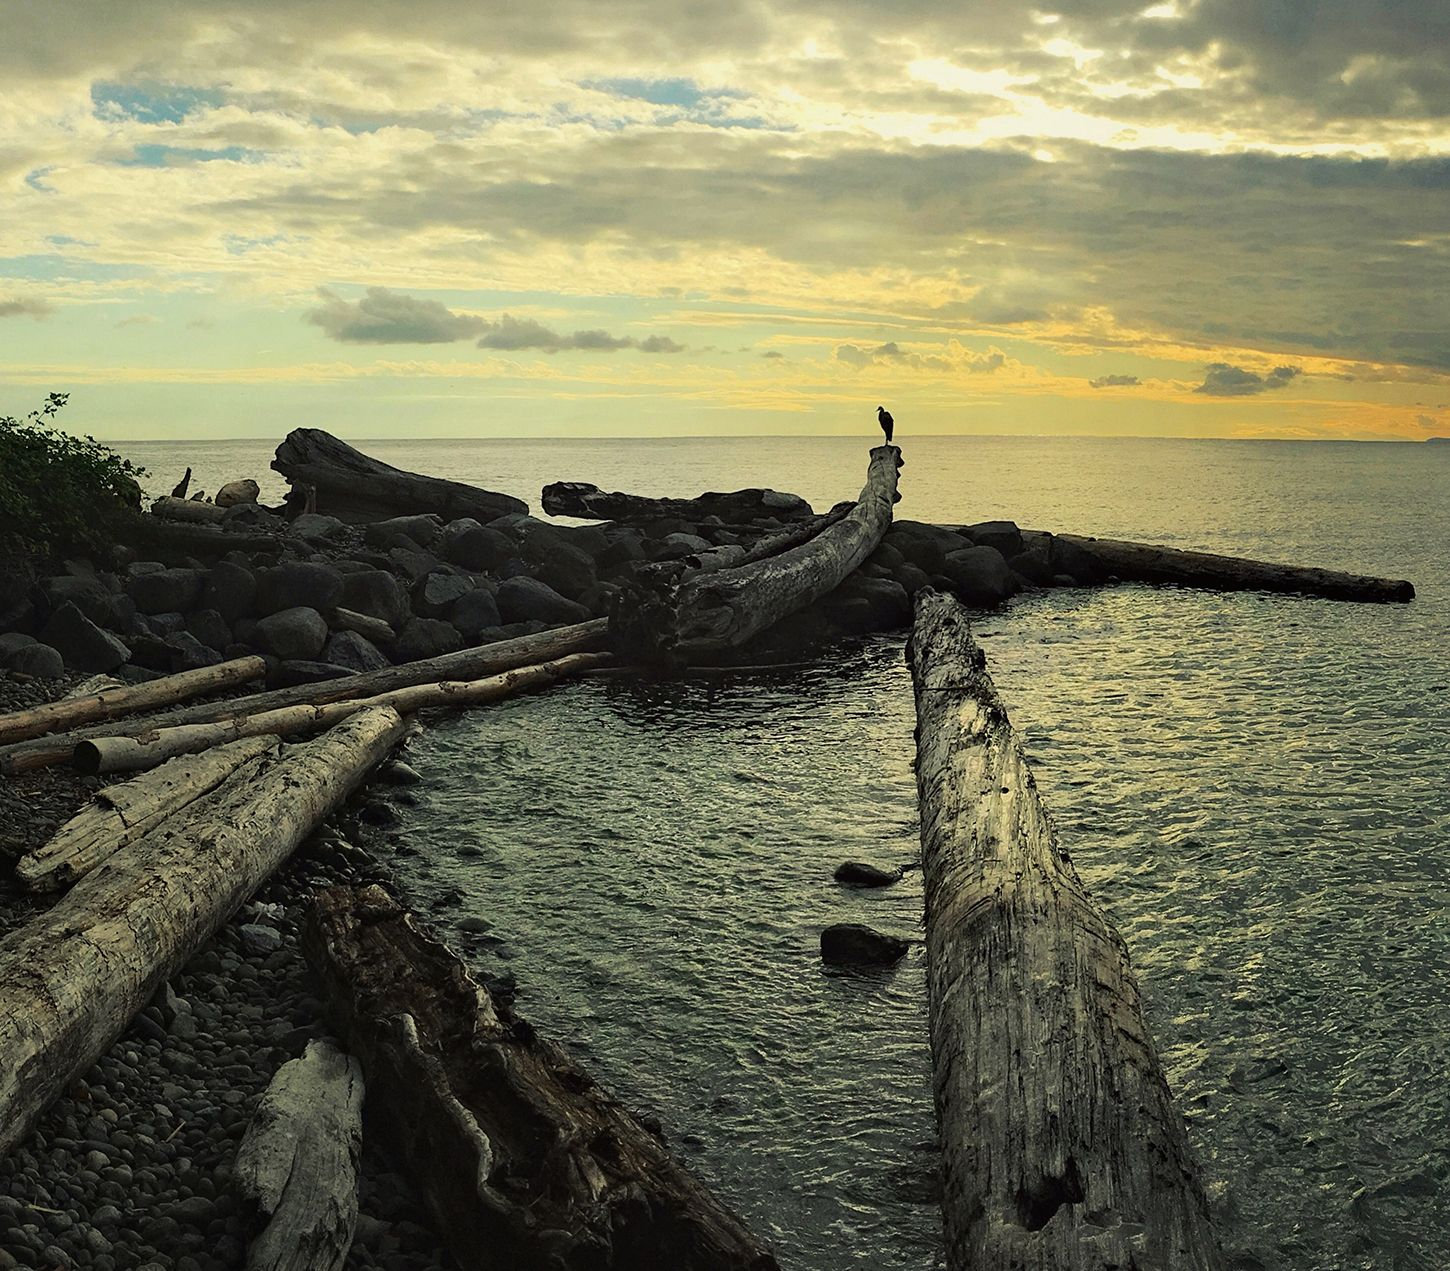 Vancouver Bc Beaches: Wreck Beach At Dusk, Vancouver, BC [1450 X 1271]